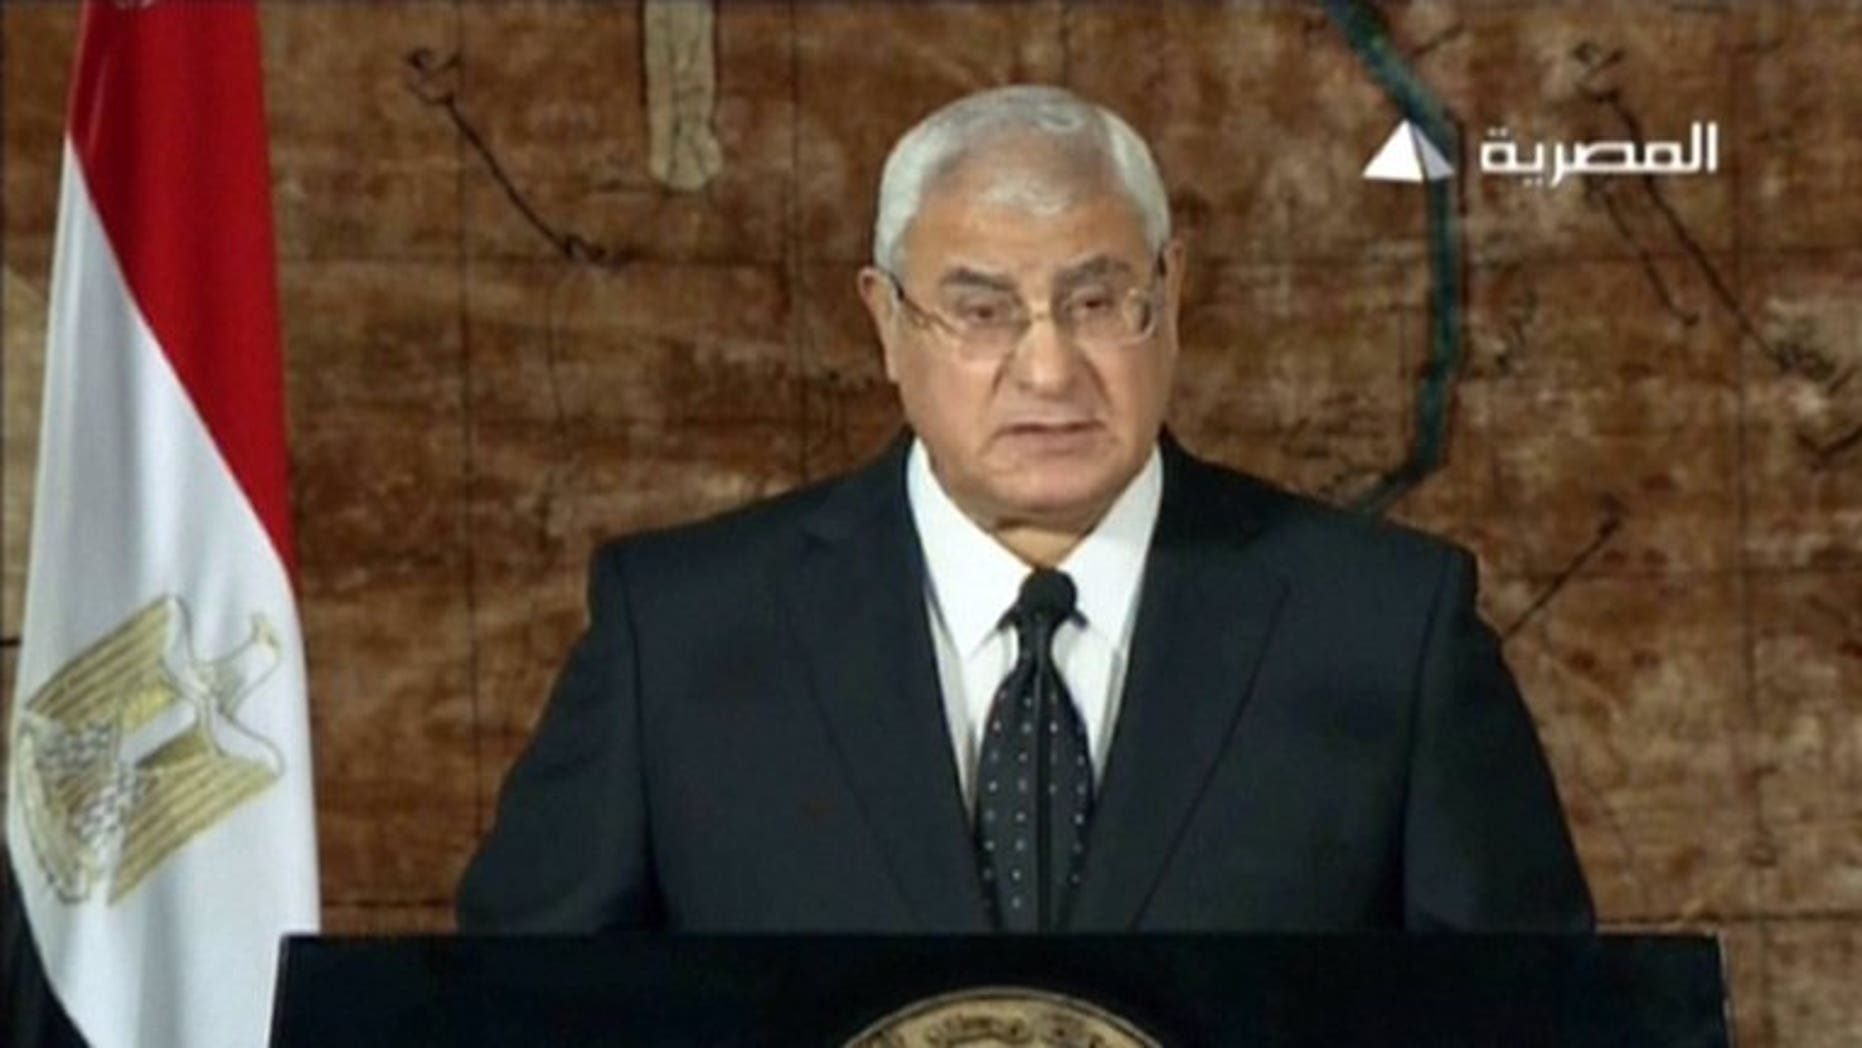 An image grab taken from Egyptian state TV shows interim president Adly Mansour delivering a televised address to the nation from Cairo, on July 18, 2013. A new Egyptian constitution replacing the one suspended on president Mohamed Morsi's ouster will be put to a referendum by November's end, according to a spokesman for the panel drafting the charter.